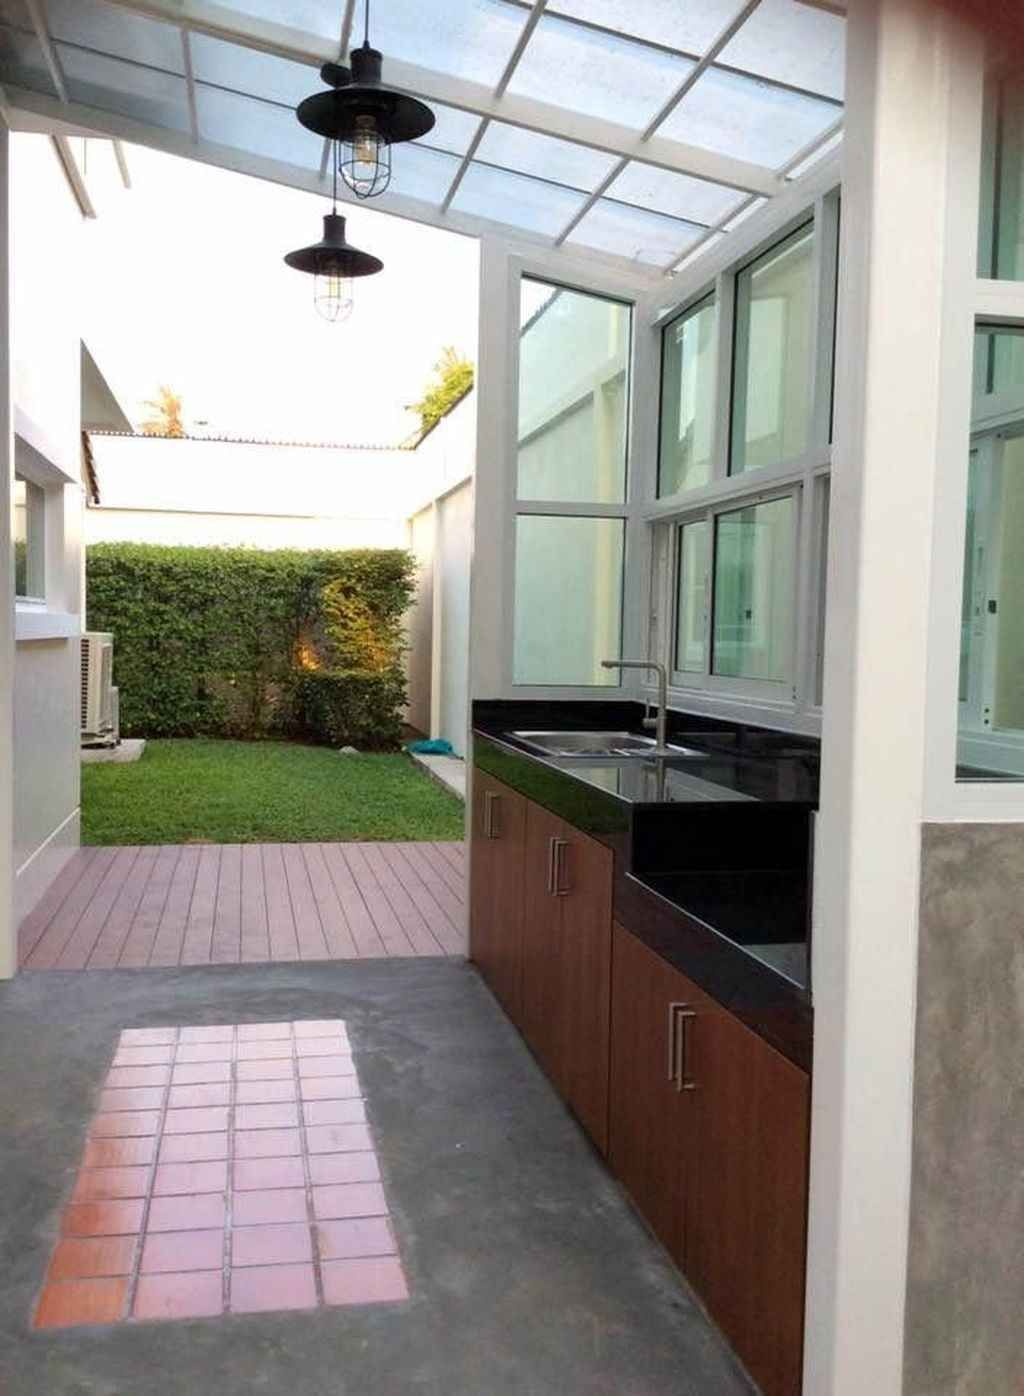 95 Incredible Outdoor Kitchen Design Ideas For Summer Homixover Com Di 2020 Dekorasi Rumah Elegan Desain Interior Modern Dapur Luar Ruangan